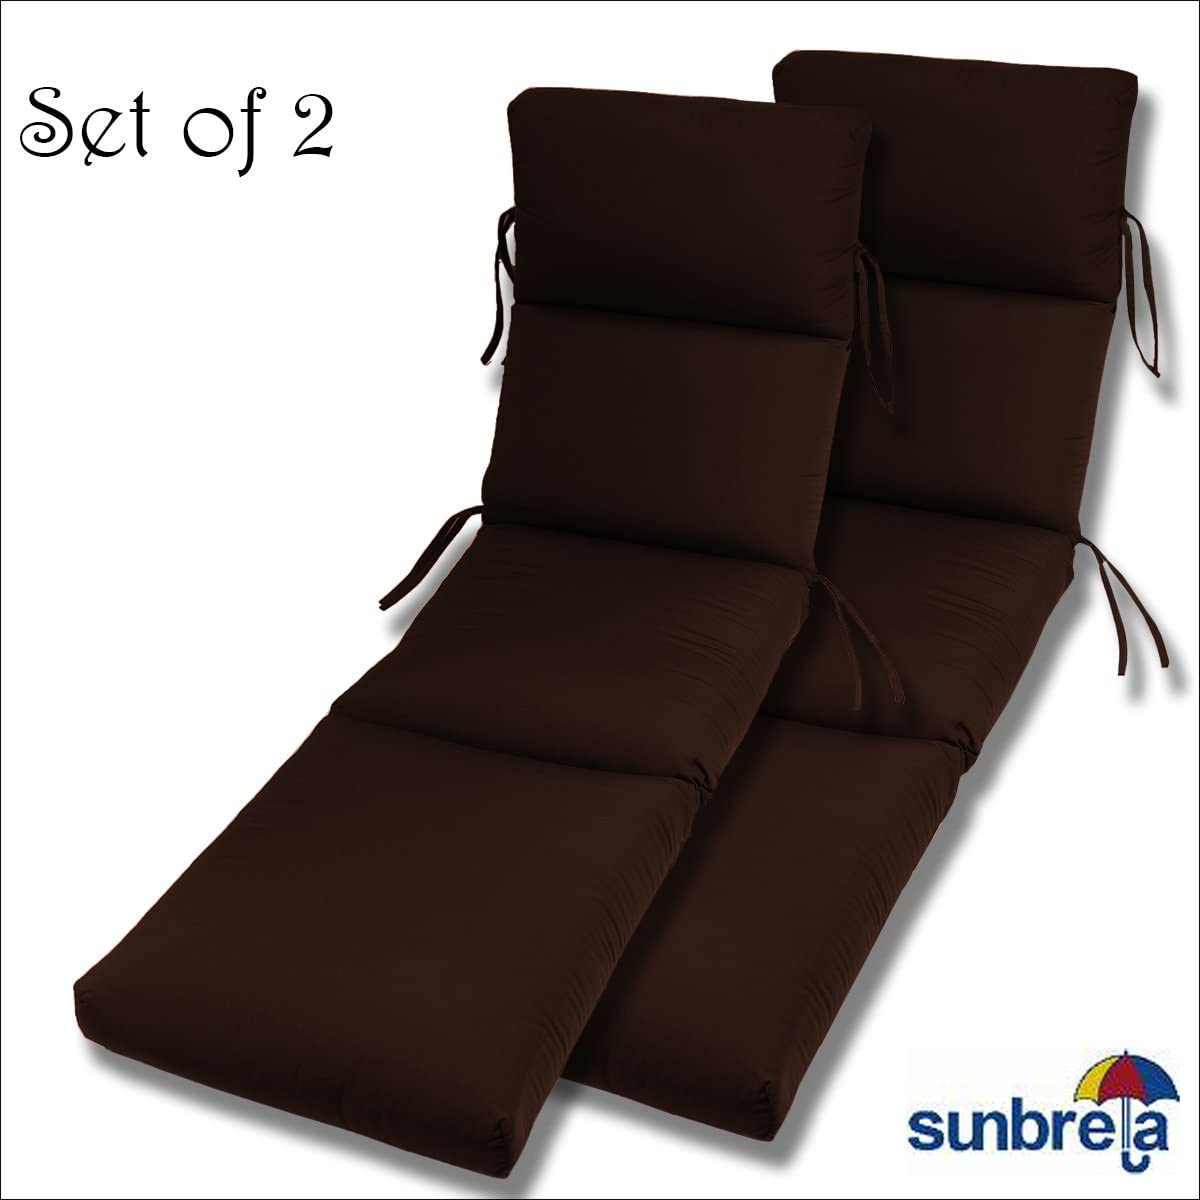 Comfort Classics Inc. Set of 2-22x74x5 Sunbrella Indoor Outdoor Fabrics in Bay Brown CHANNELED Chaise Cushion